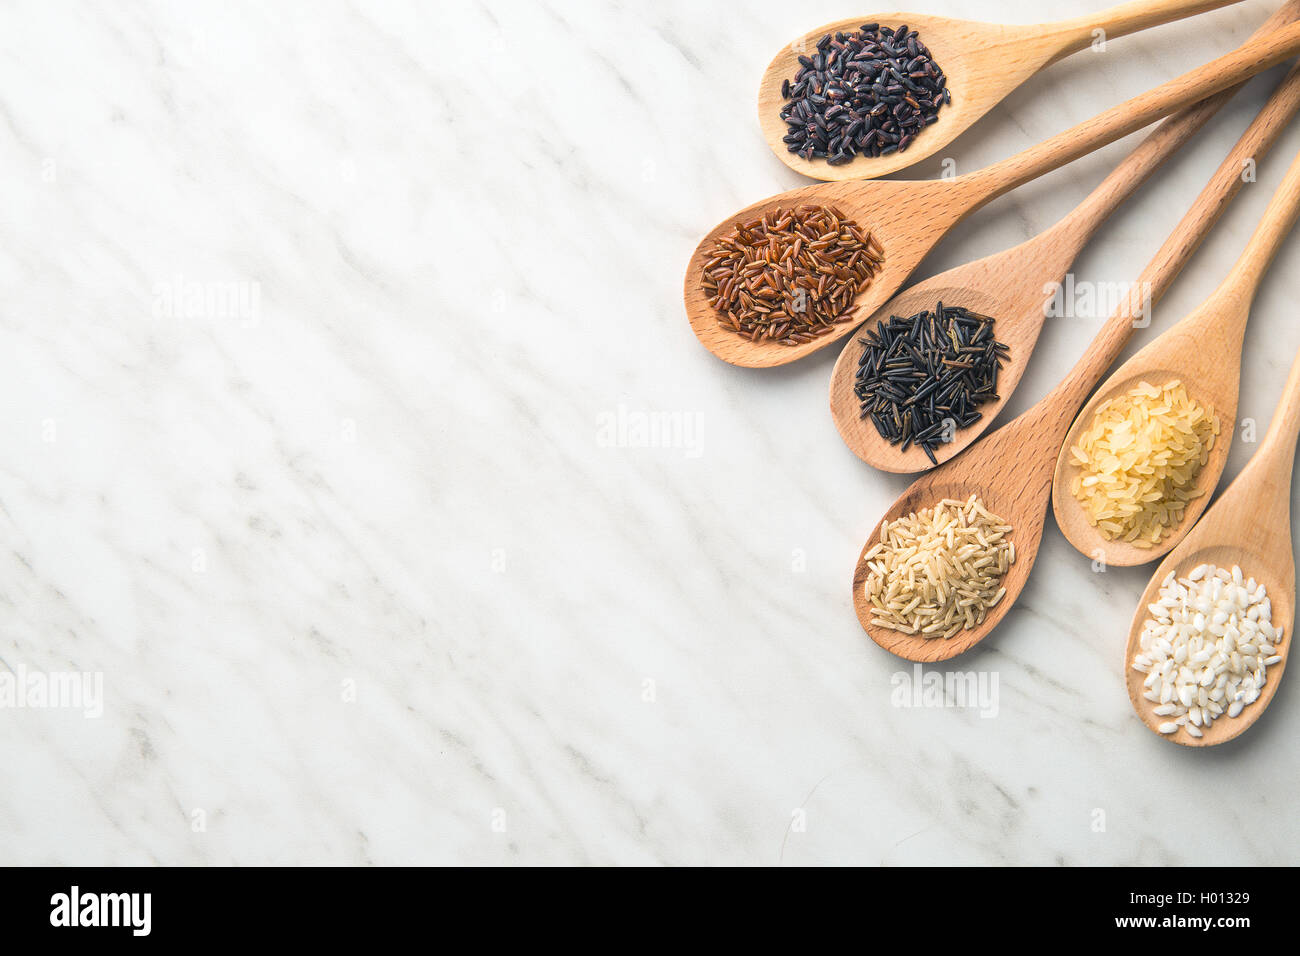 Different rice varieties on kitchen table Stock Photo: 120496945 - Alamy